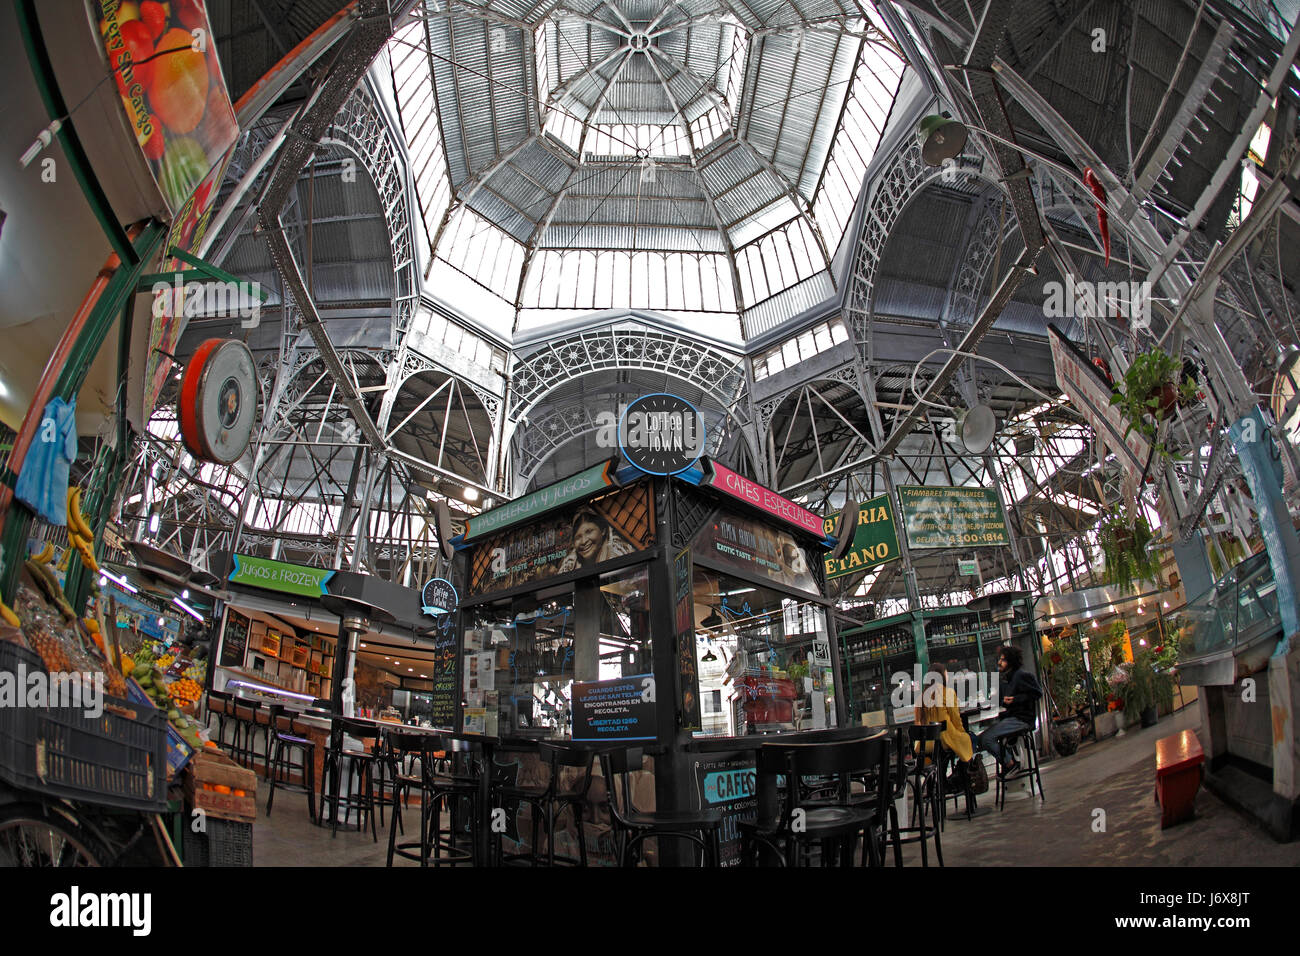 San Telmo indoor market, Tourist attraction for antiques and coffee in Buenos Aires, Argentina. Stock Photo